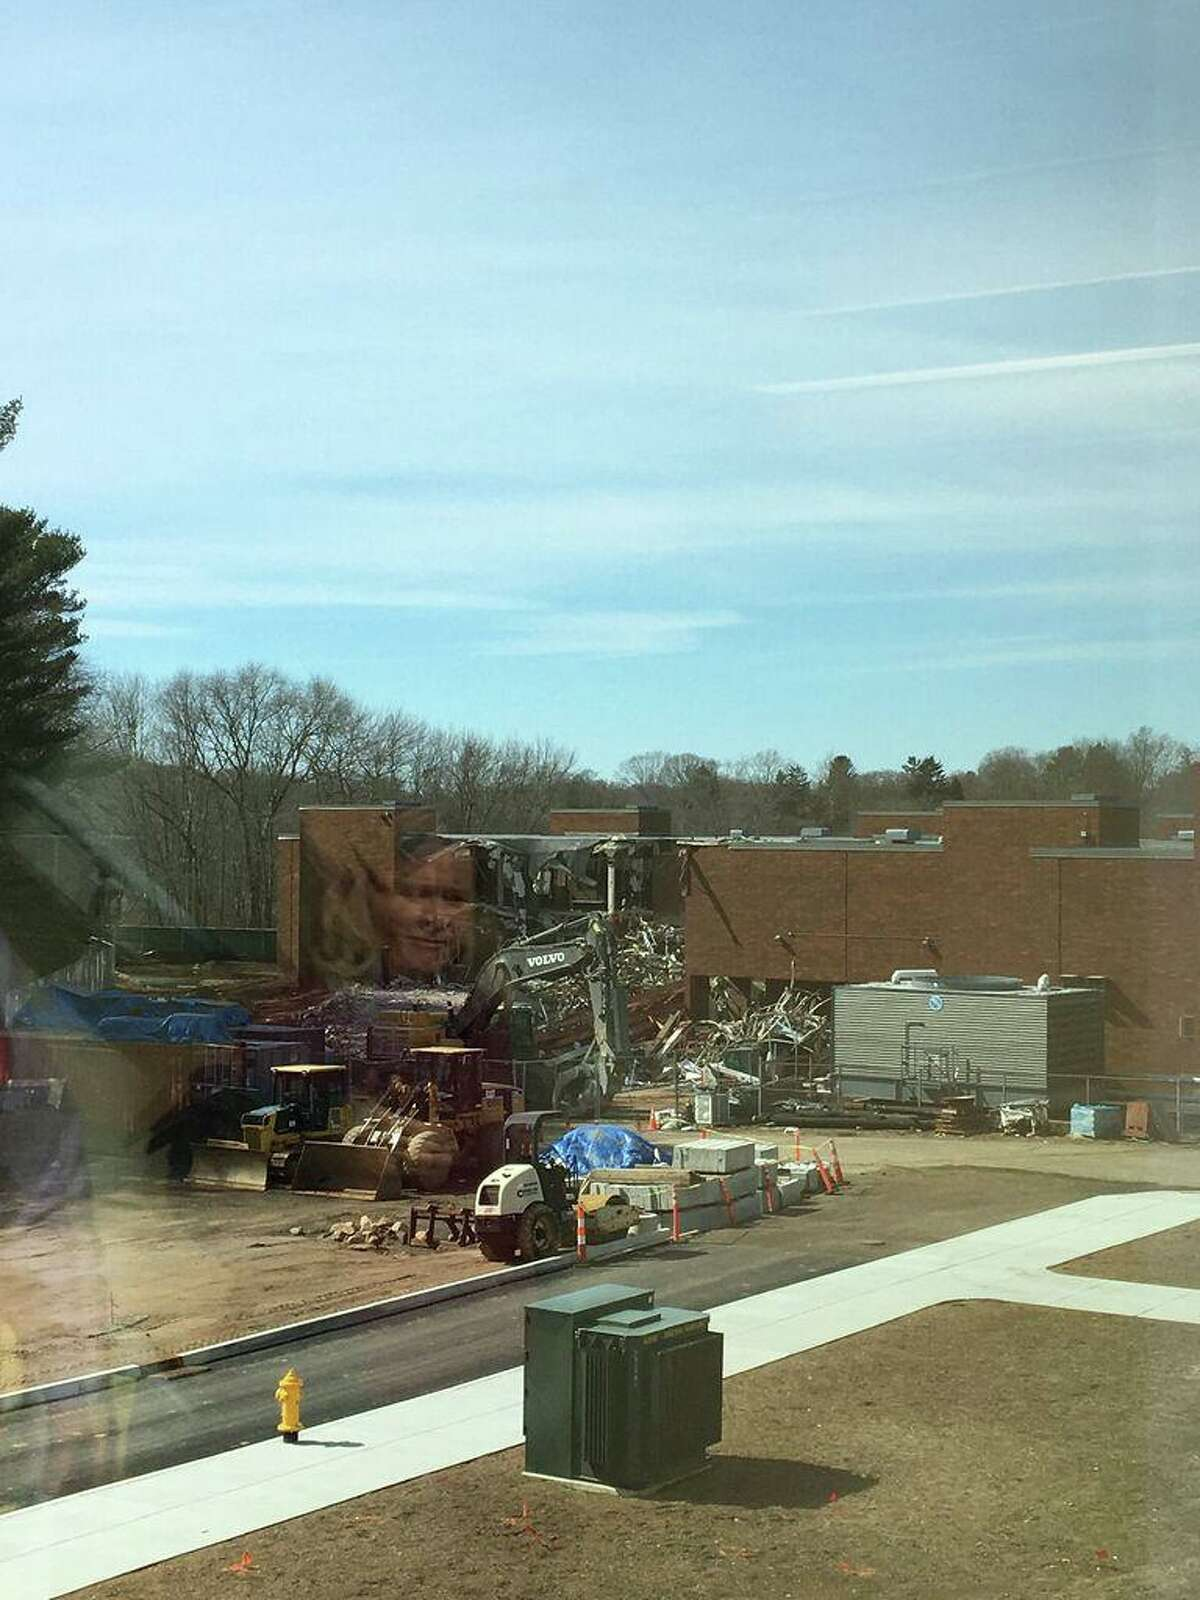 Work on the Walsh Intermediate School expansion and renovation project in March 2020.